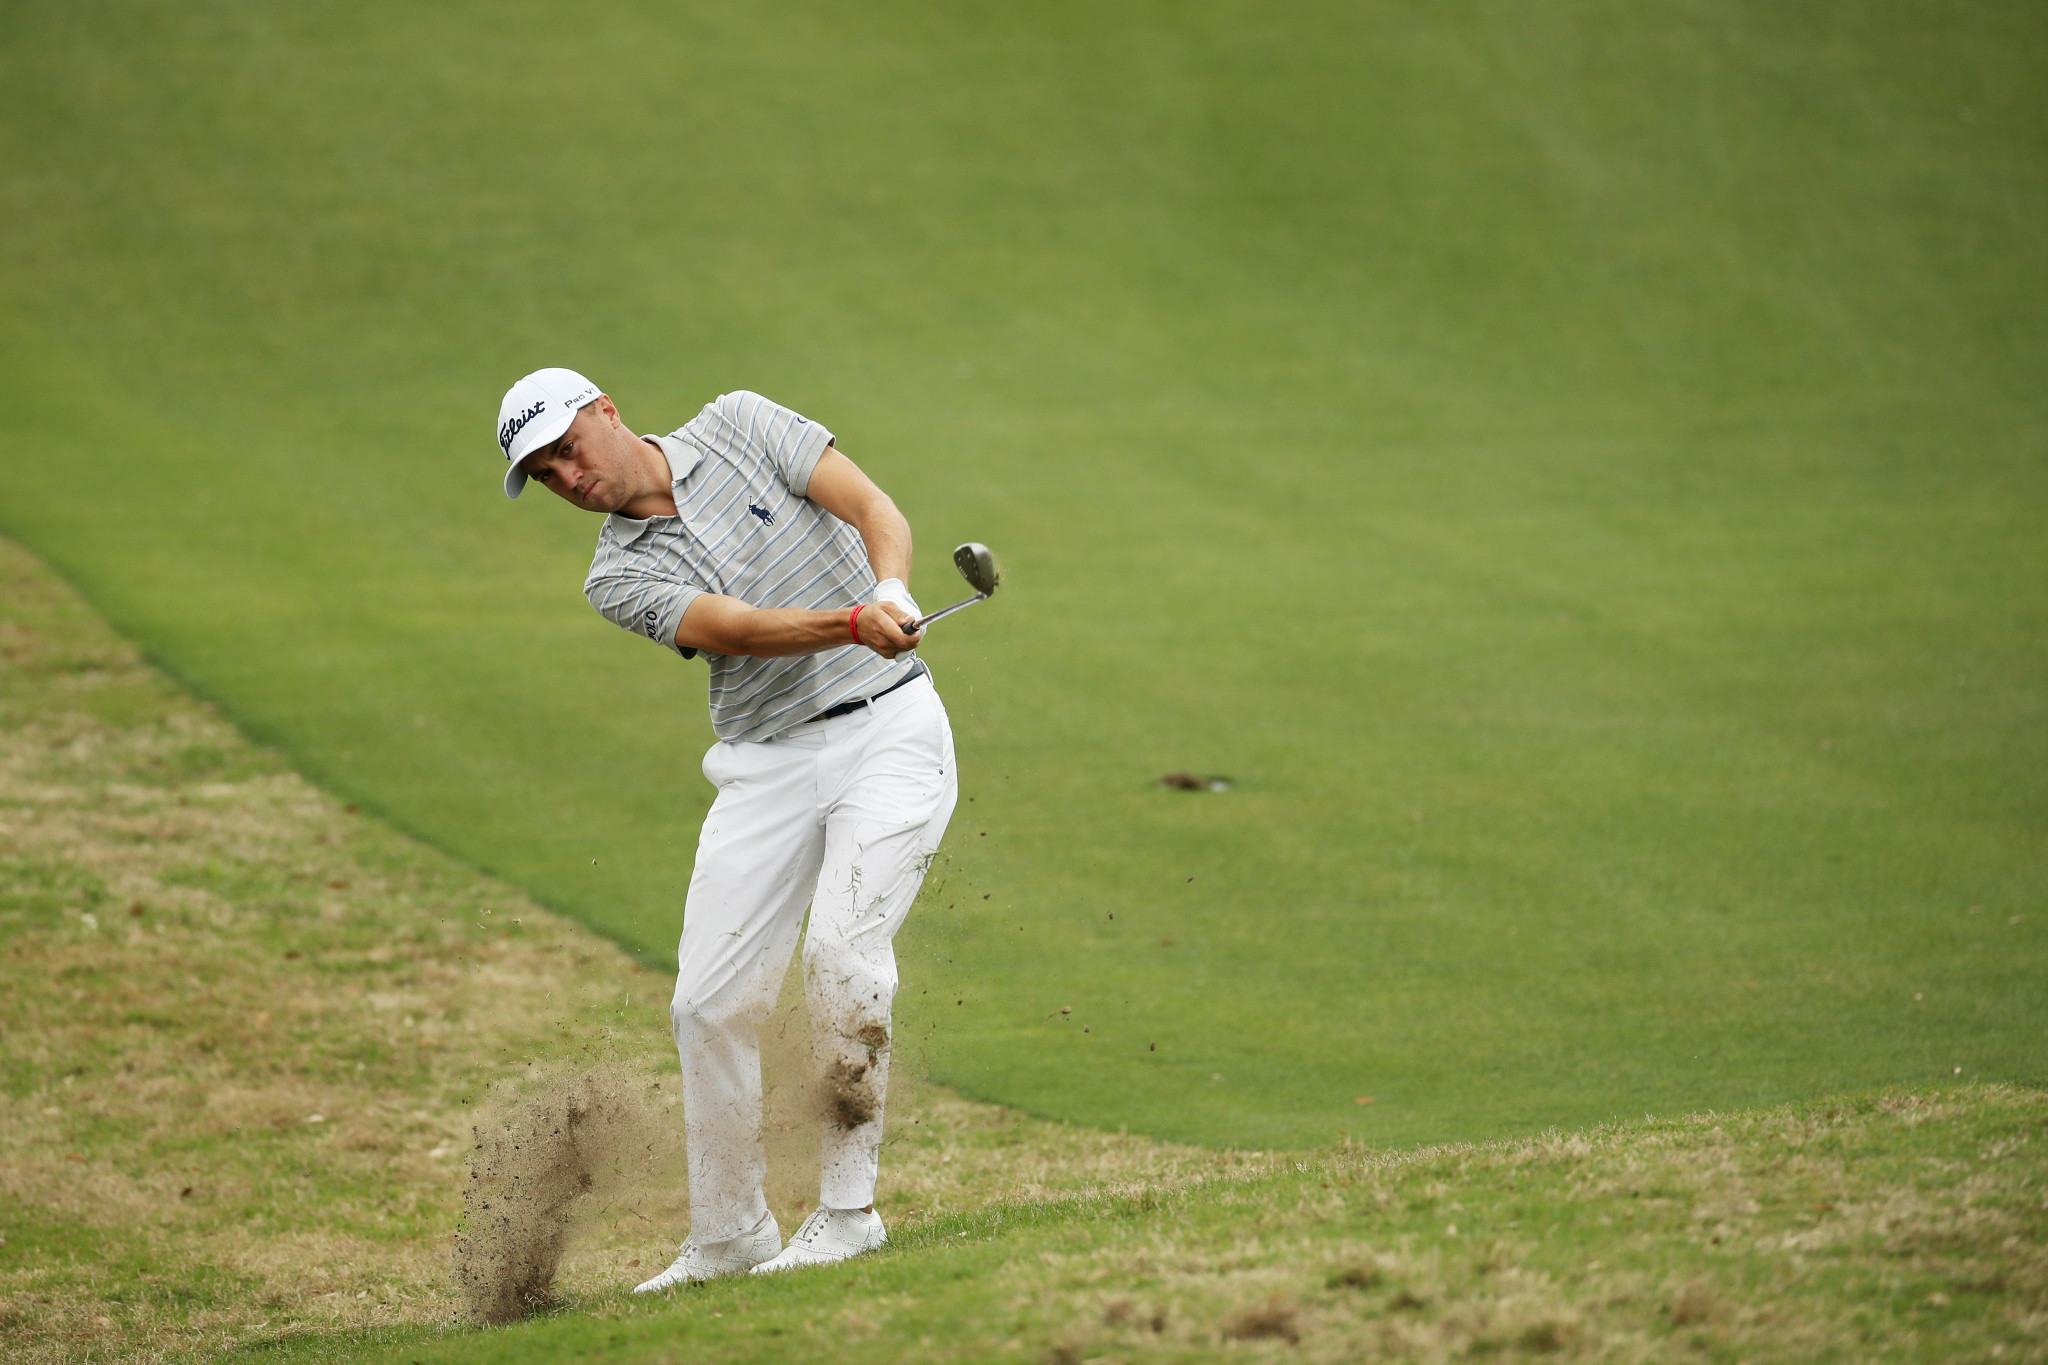 Thomas progresses with ease as McIlroy crashes out at WGC Match Play